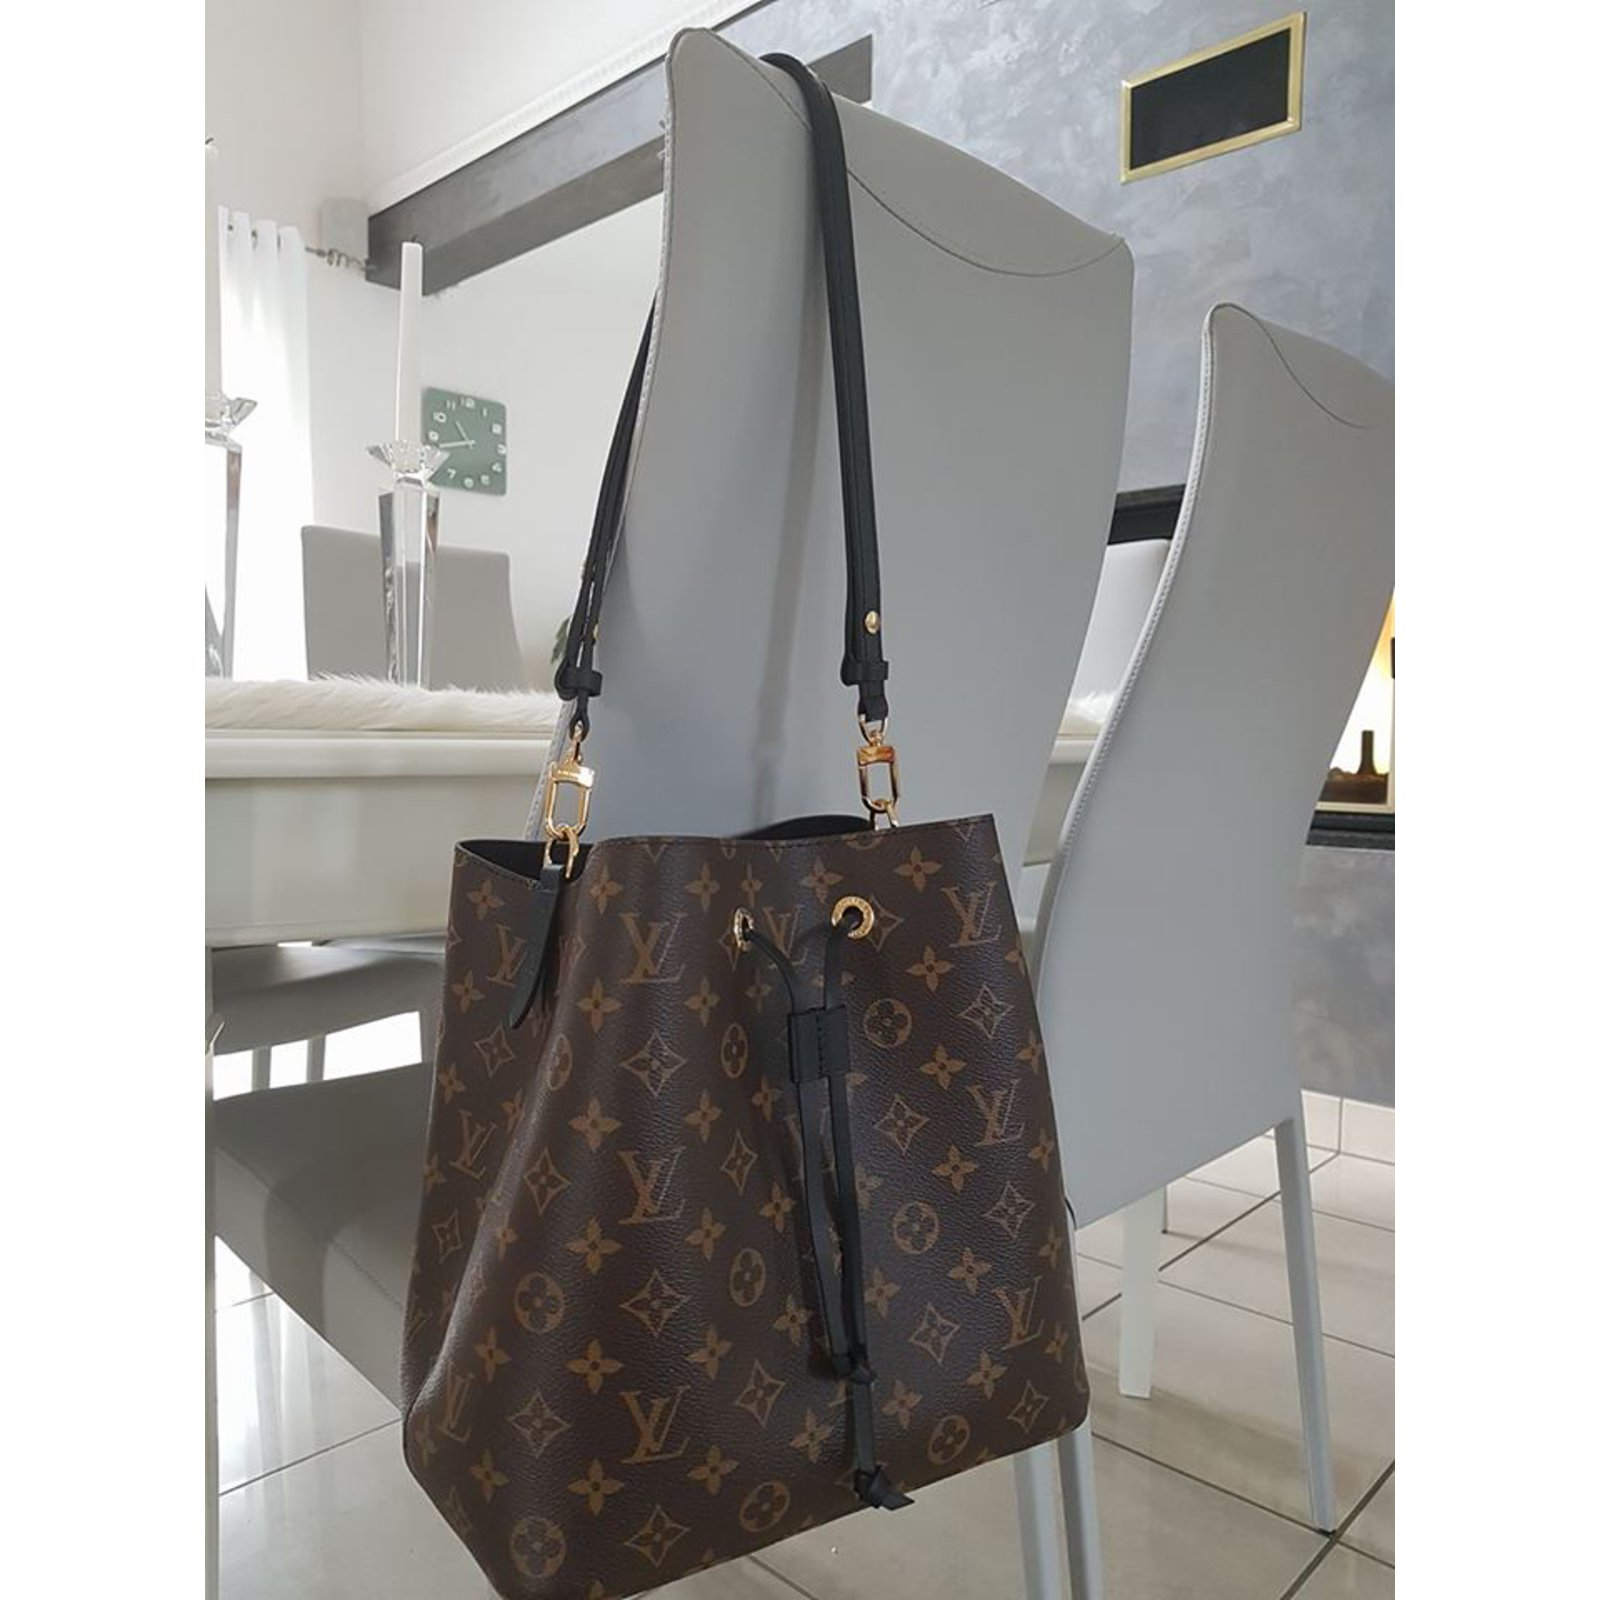 fe6de3d35a97 Facebook · Pin This. Louis Vuitton Noé Bag Handbags Cloth Light brown ref. 54428